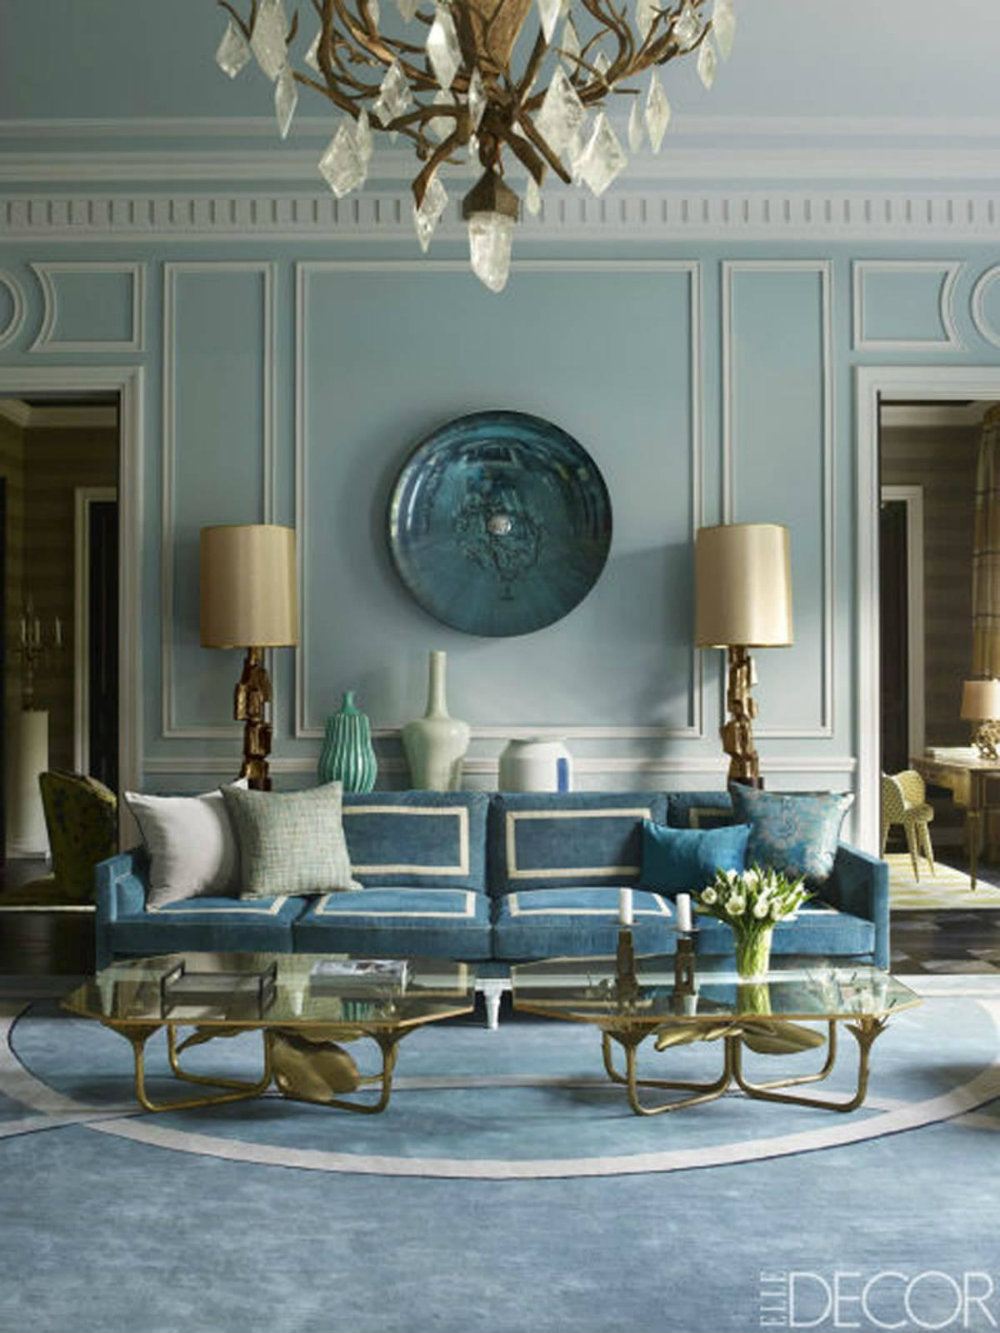 5 Stylish Blue Rooms You Will Love 02 Blue Rooms 5 Stylish Blue Rooms You Will Love 5 Stylish Blue Rooms You Will Love 02